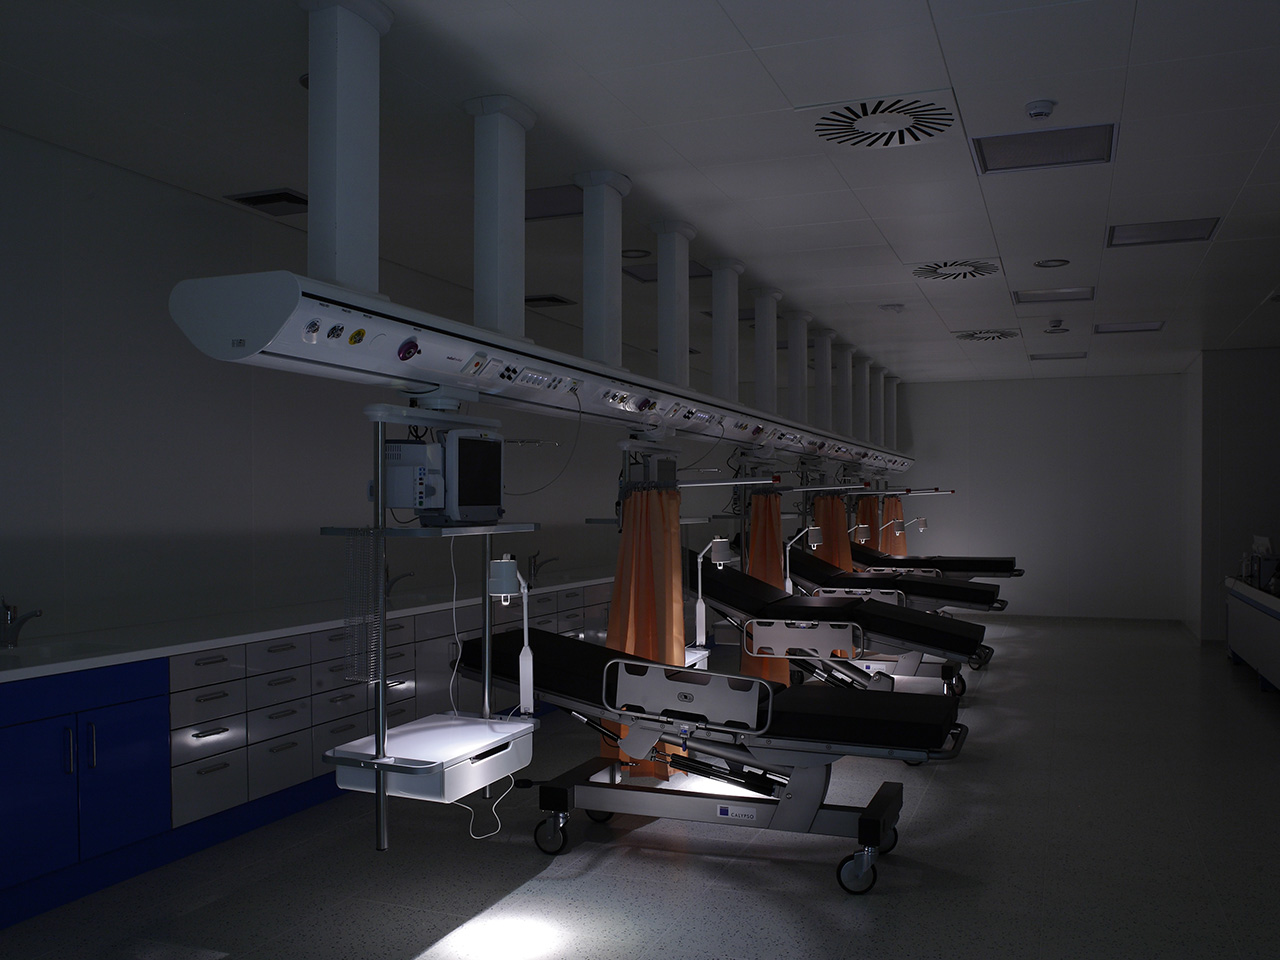 Development of OR, ICU & ER WARDS hospital areas - Conegliano Italy 07